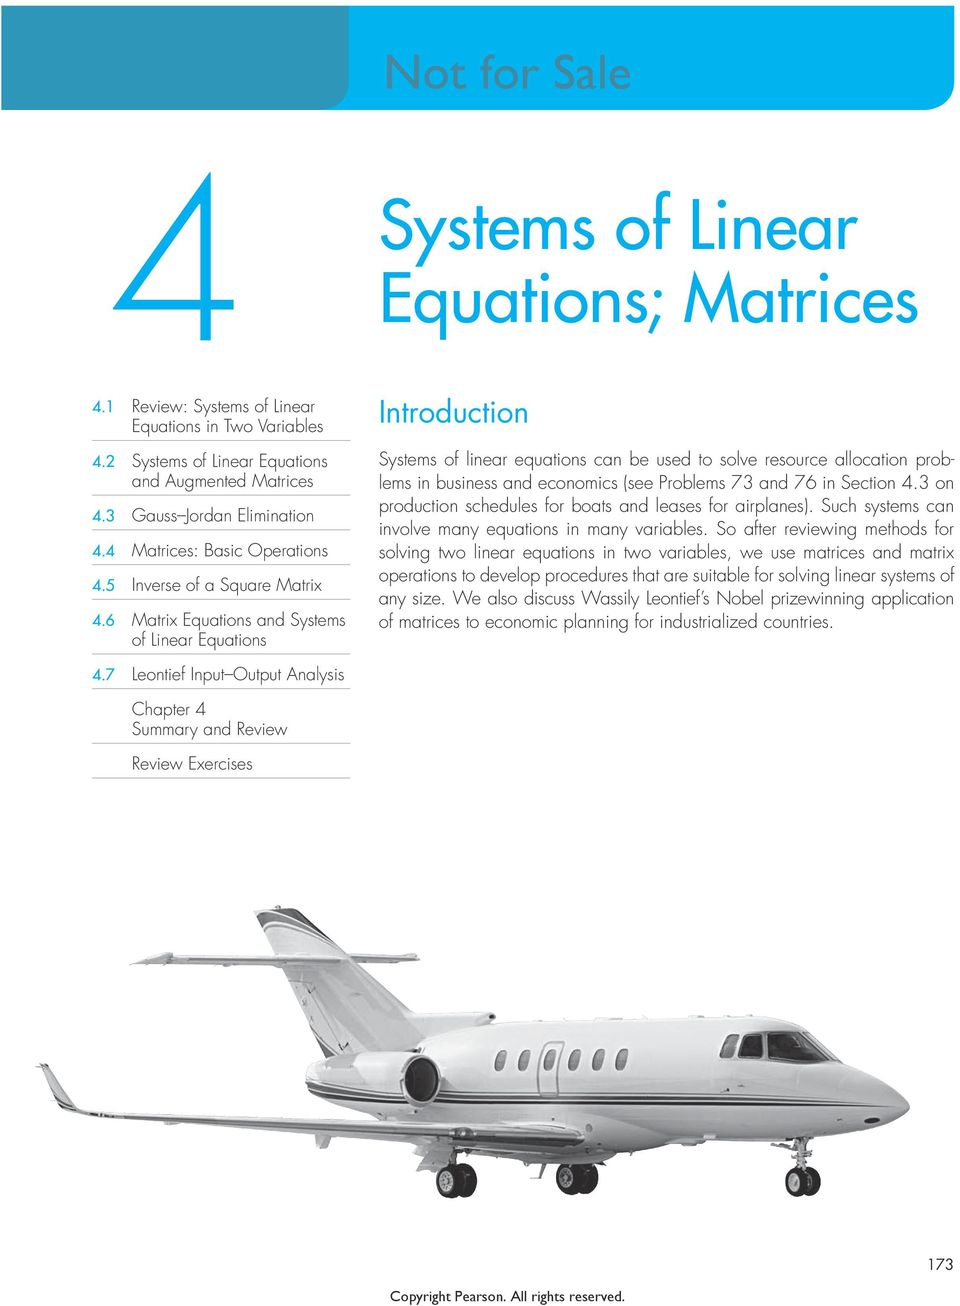 6 Matrix Equations and Systems of Linear Equations Introduction Systems of linear equations can be used to solve resource allocation problems in business and economics (see Problems 7 and 76 in